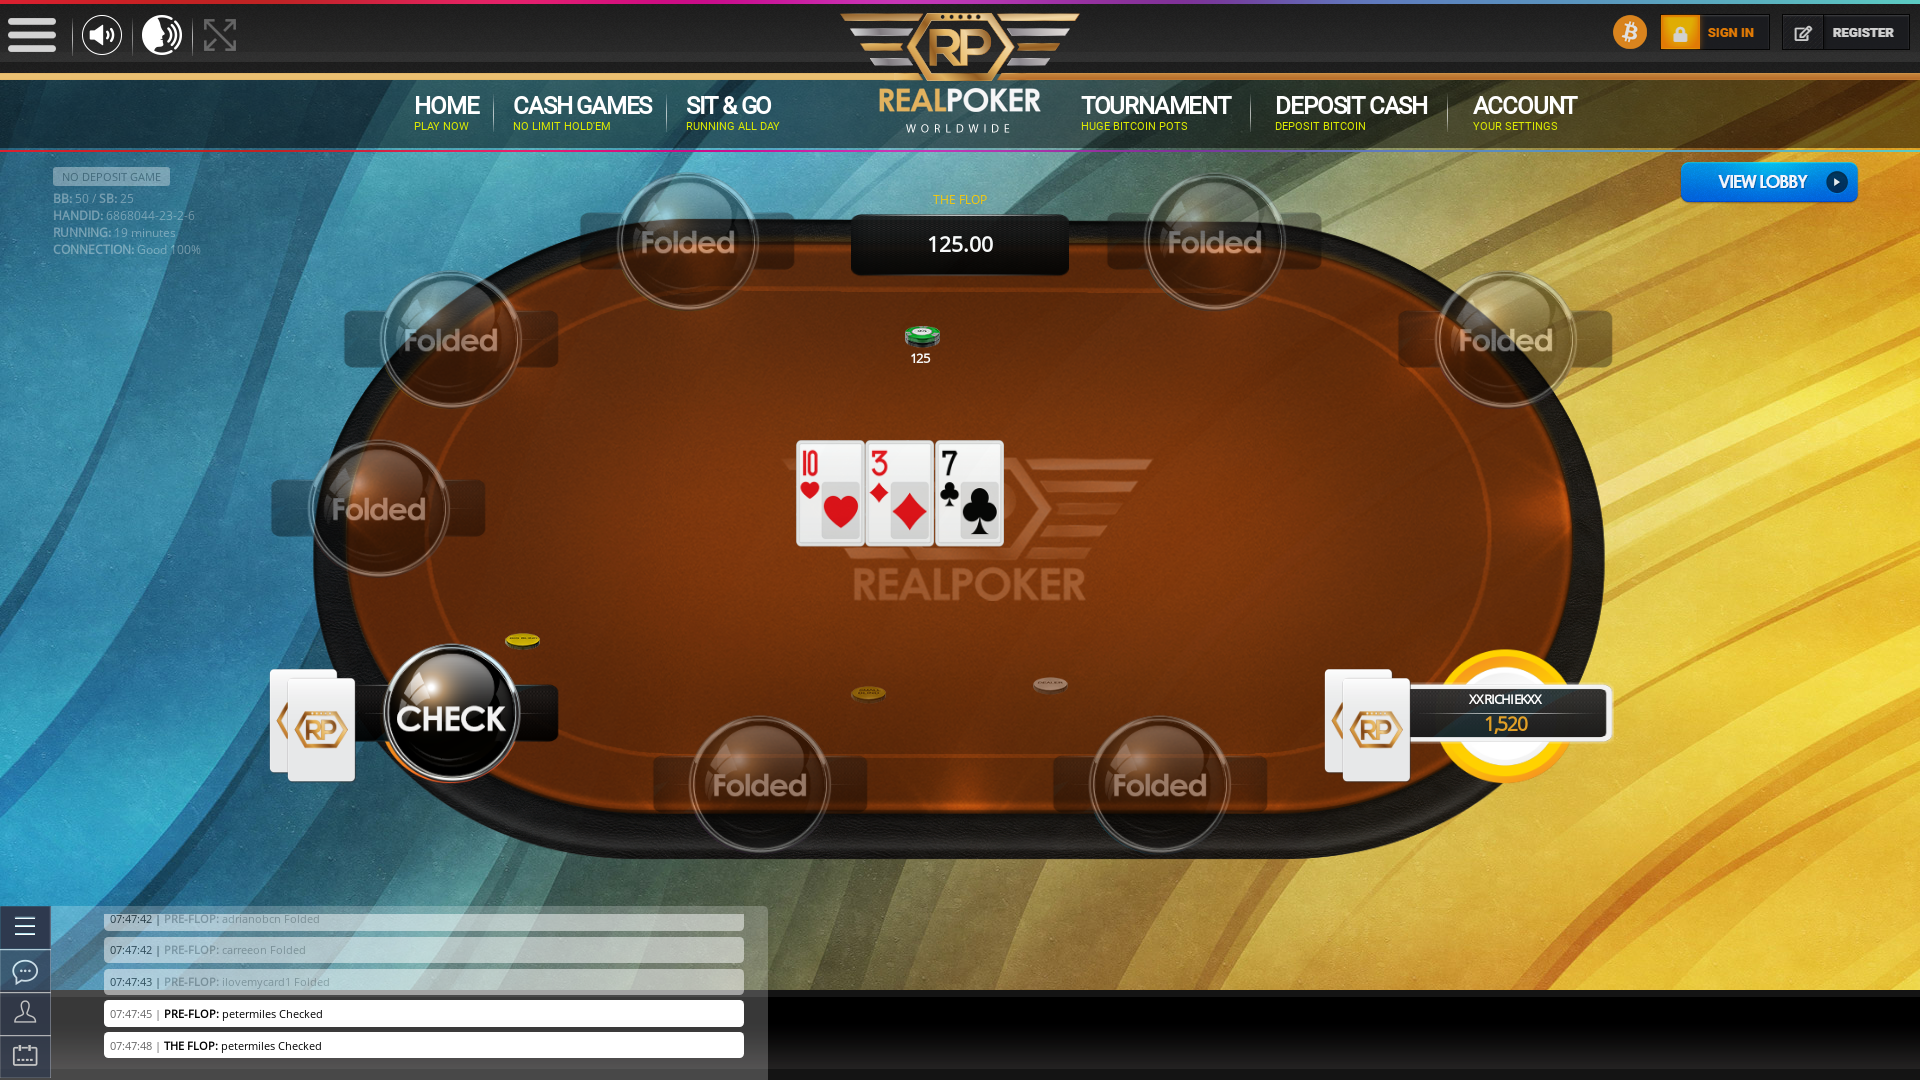 Real poker 10 player table in the 19th minute